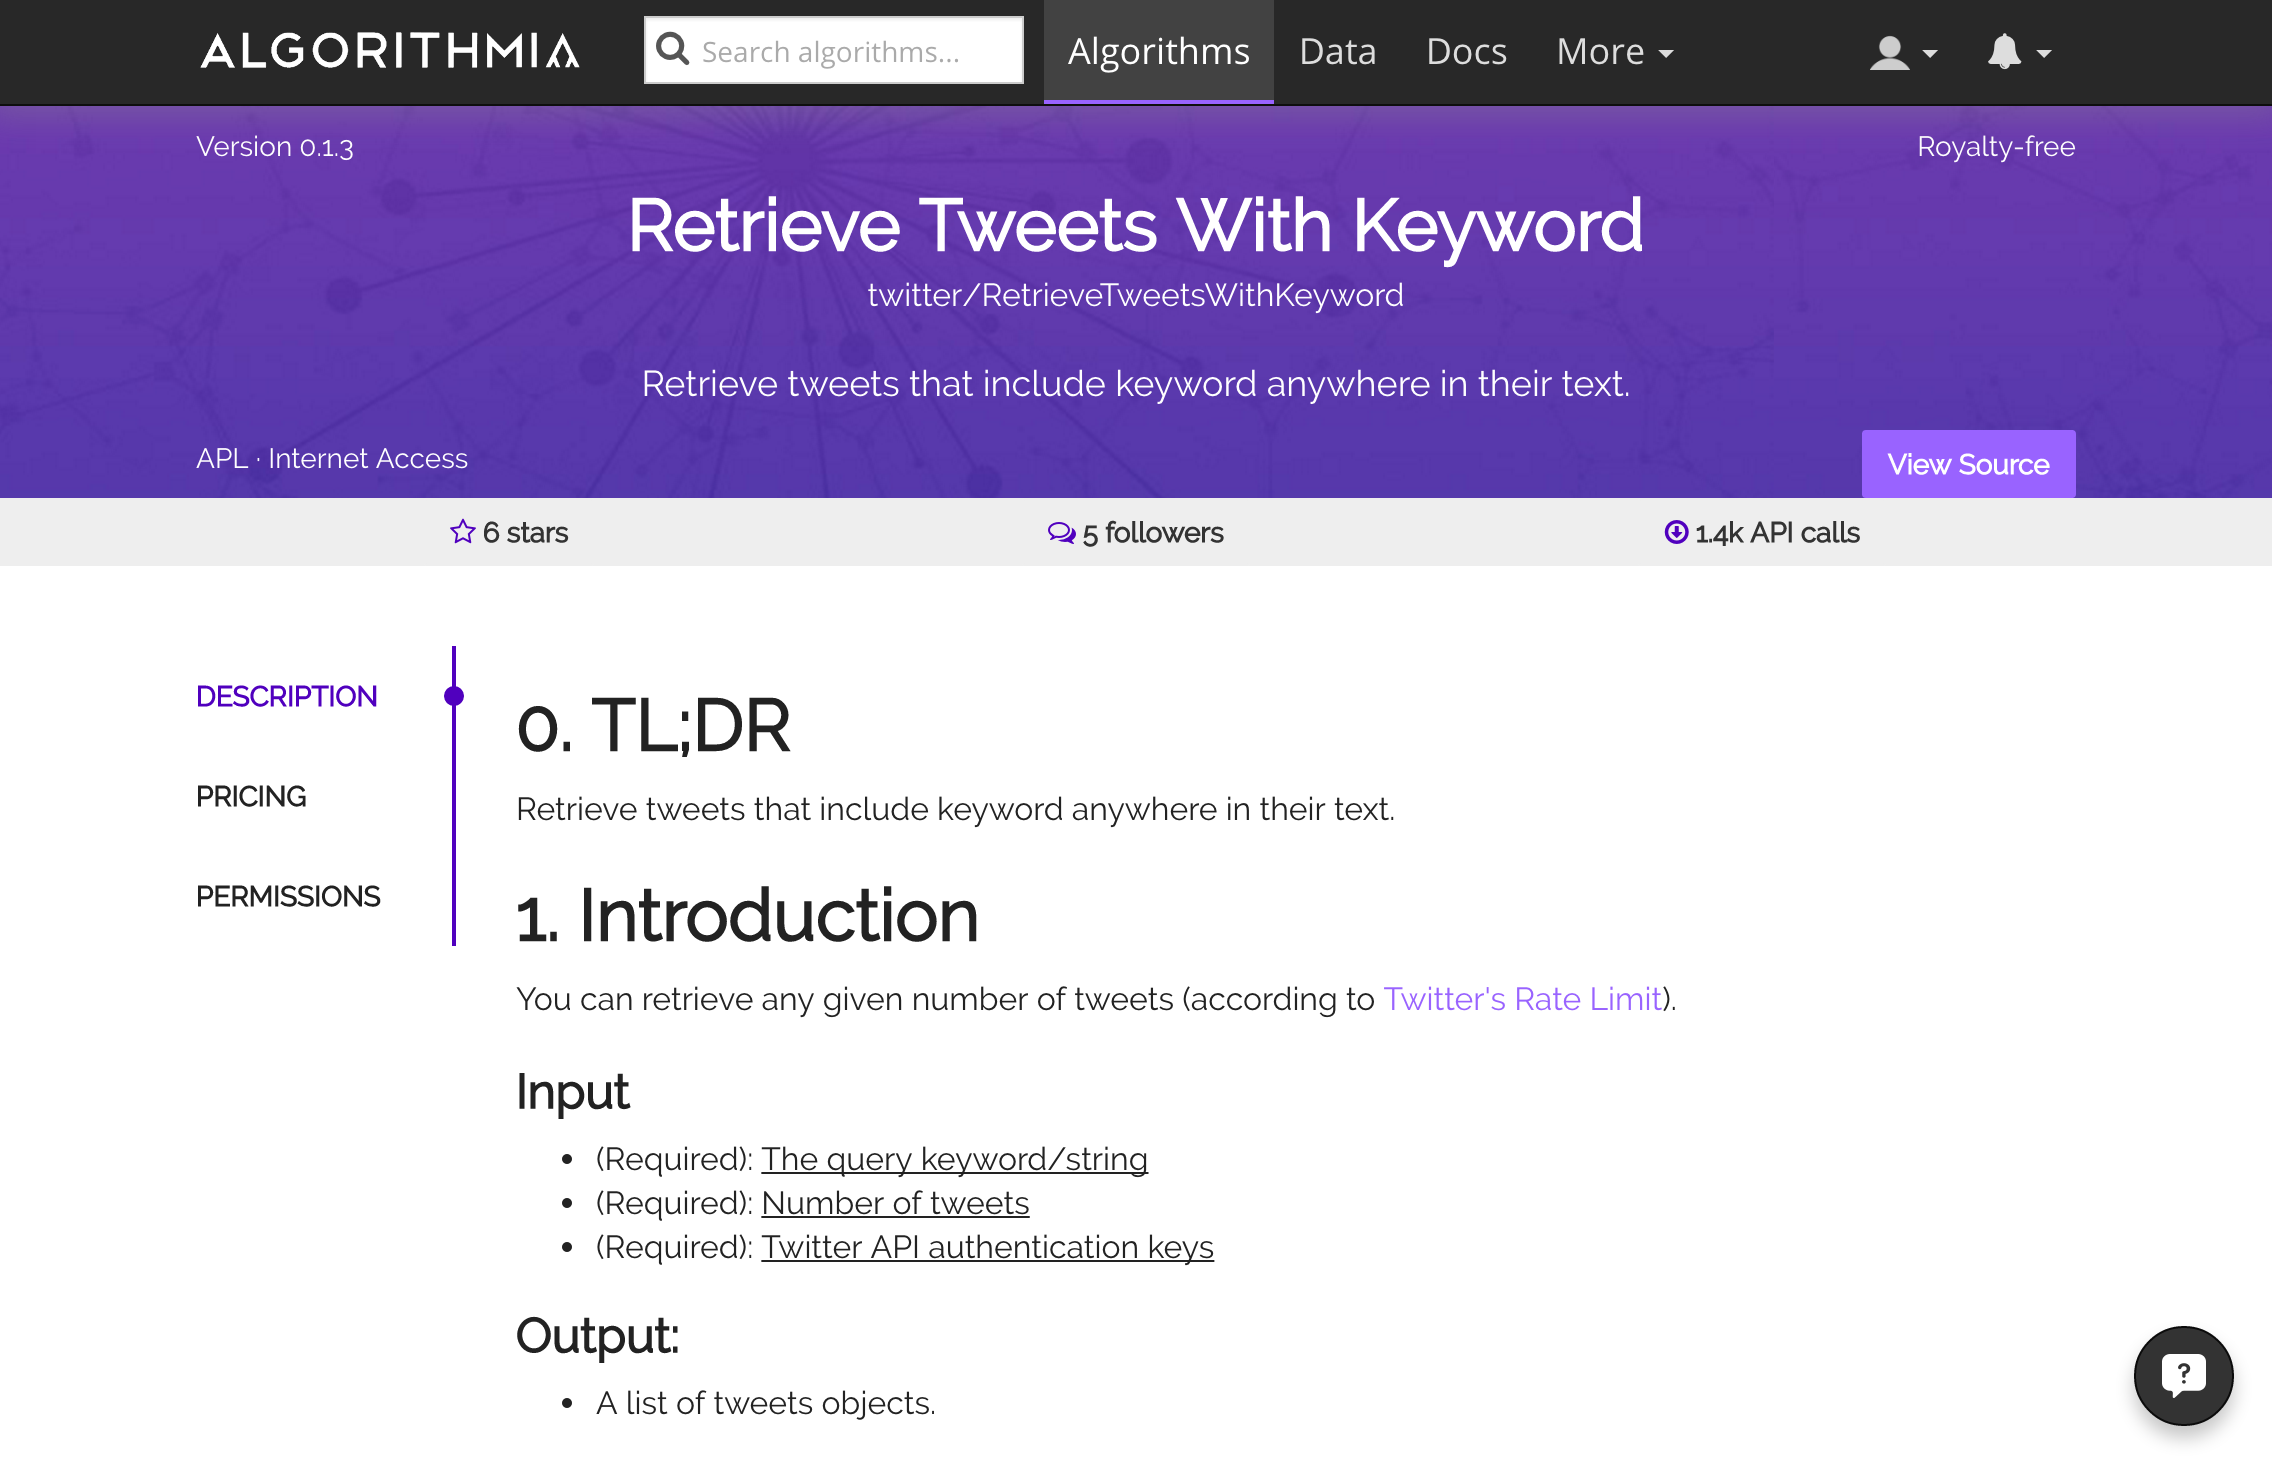 Retrieve Tweets With Keyword algorithm